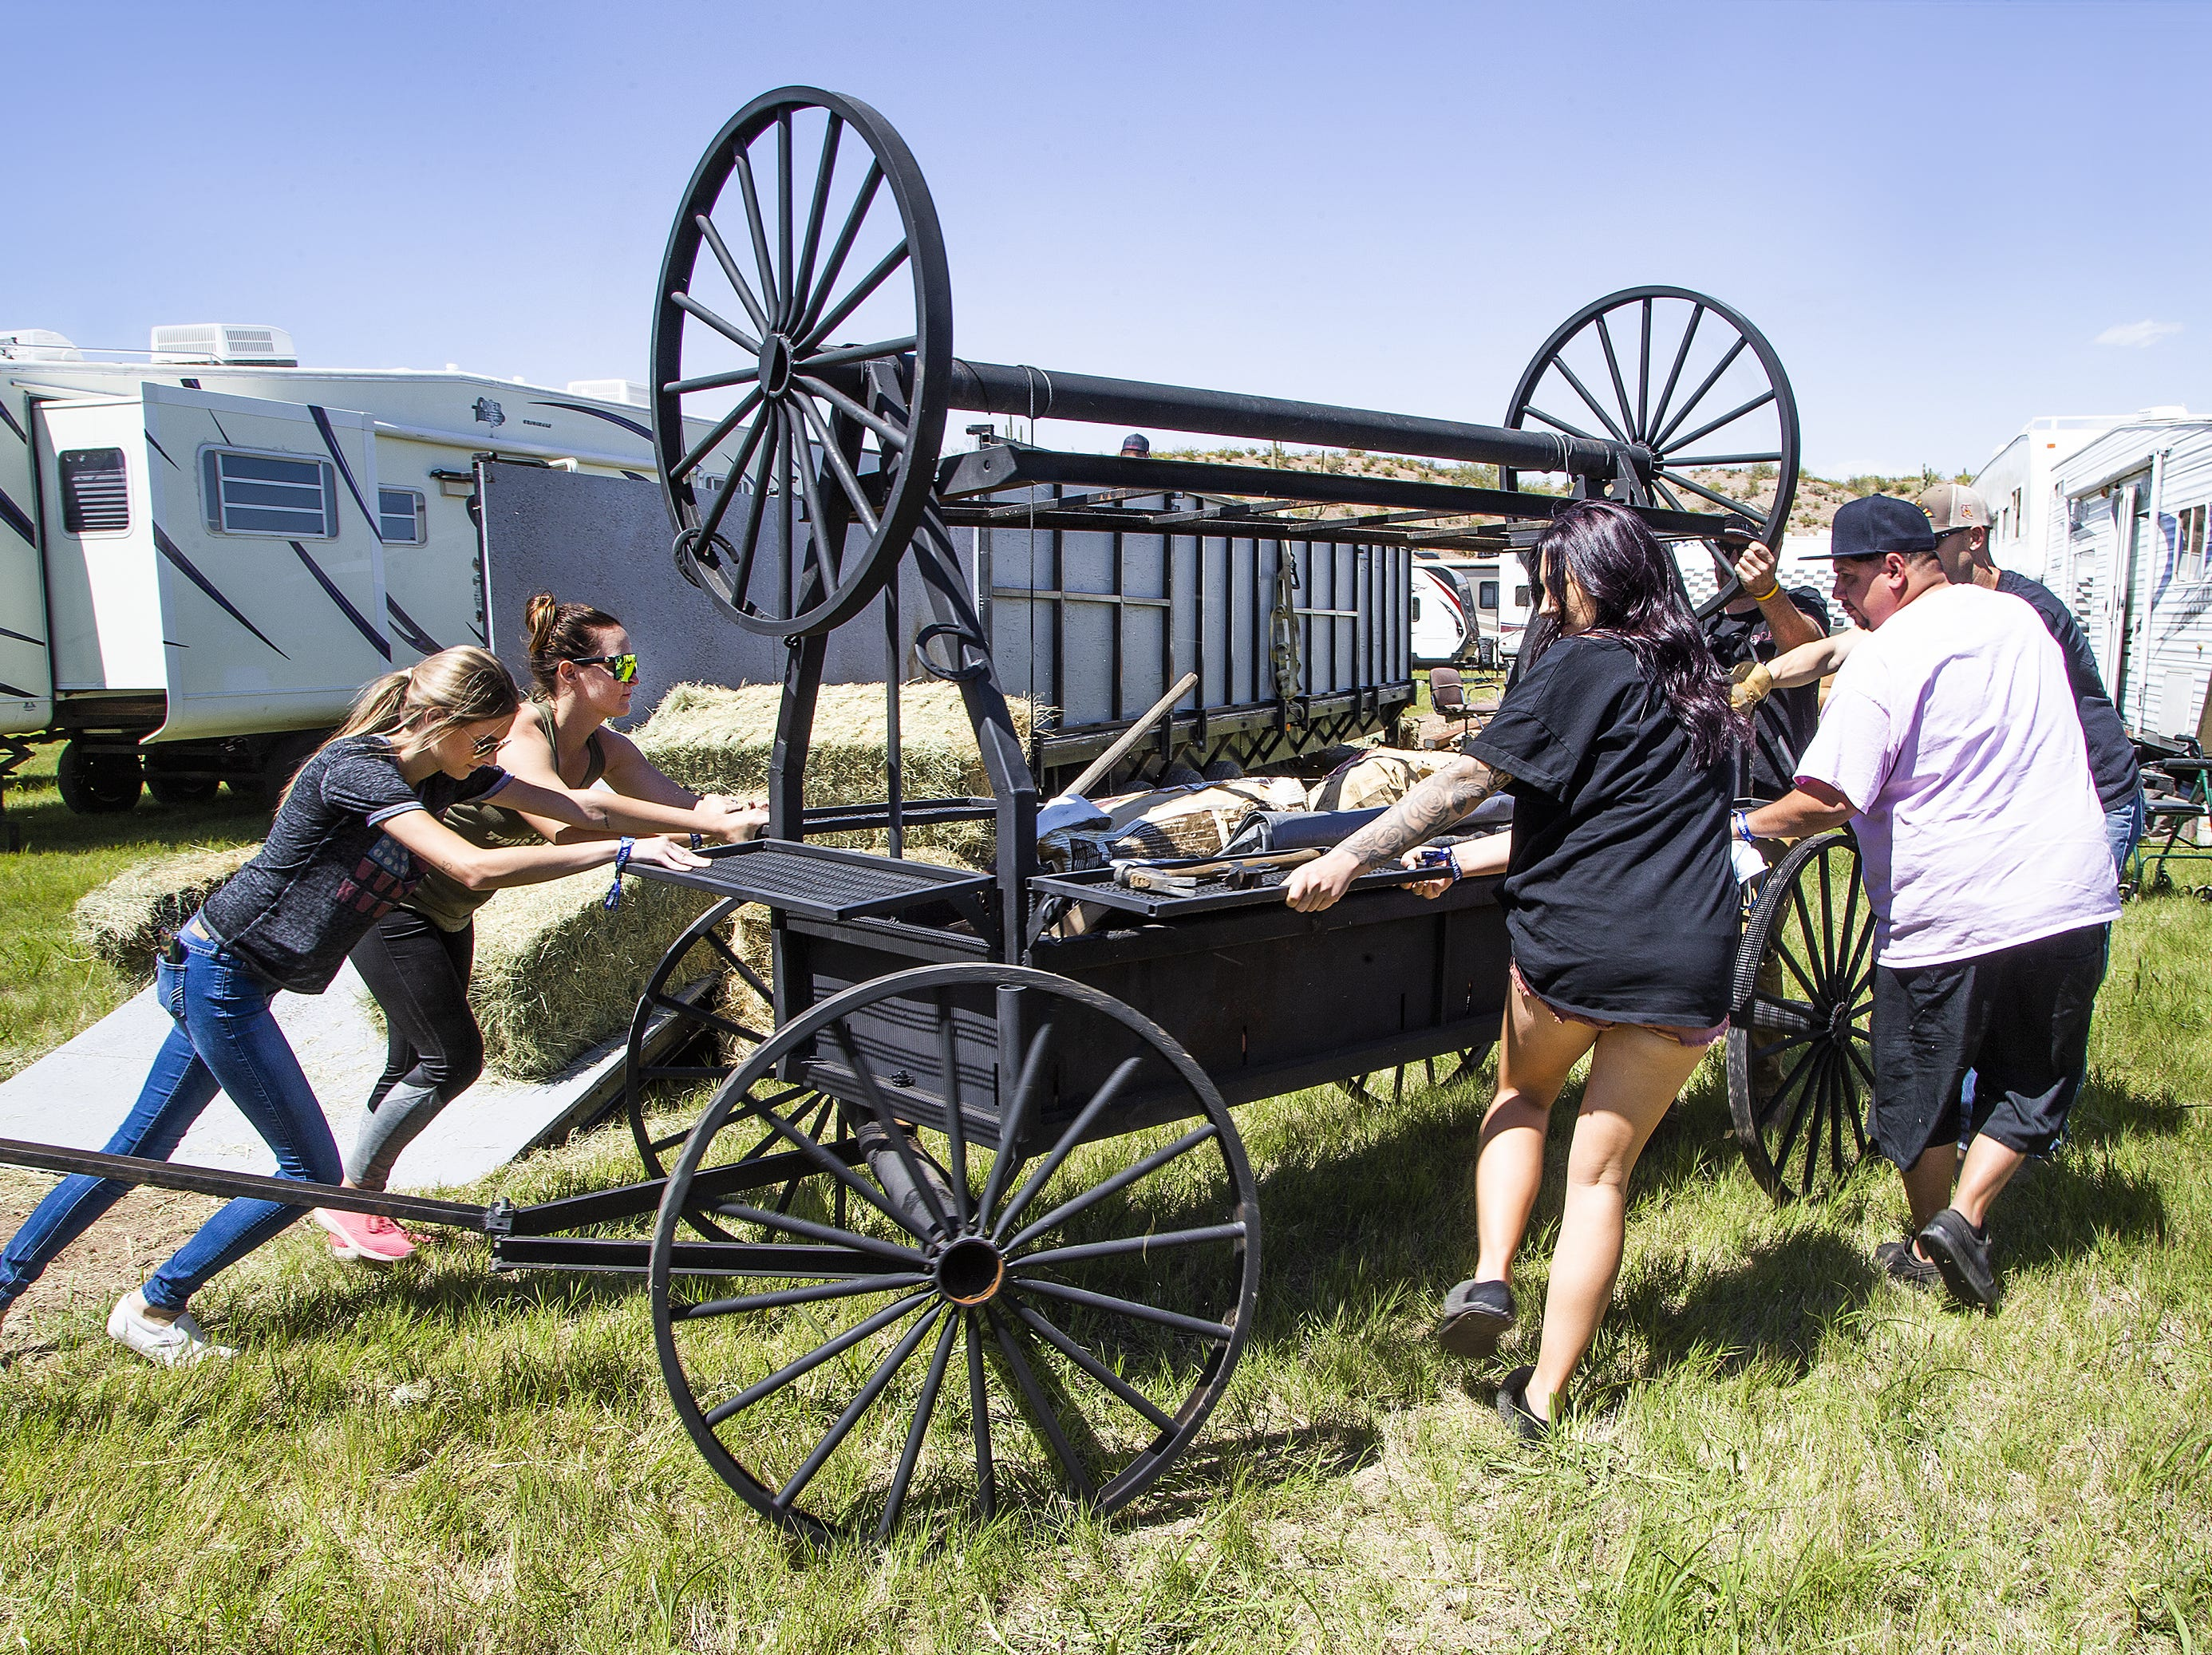 A group pushes a rolling barbecue into a campsite at the Country Thunder Arizona 2019 music festival outside Florence, Wednesday morning, April 10, 2019.